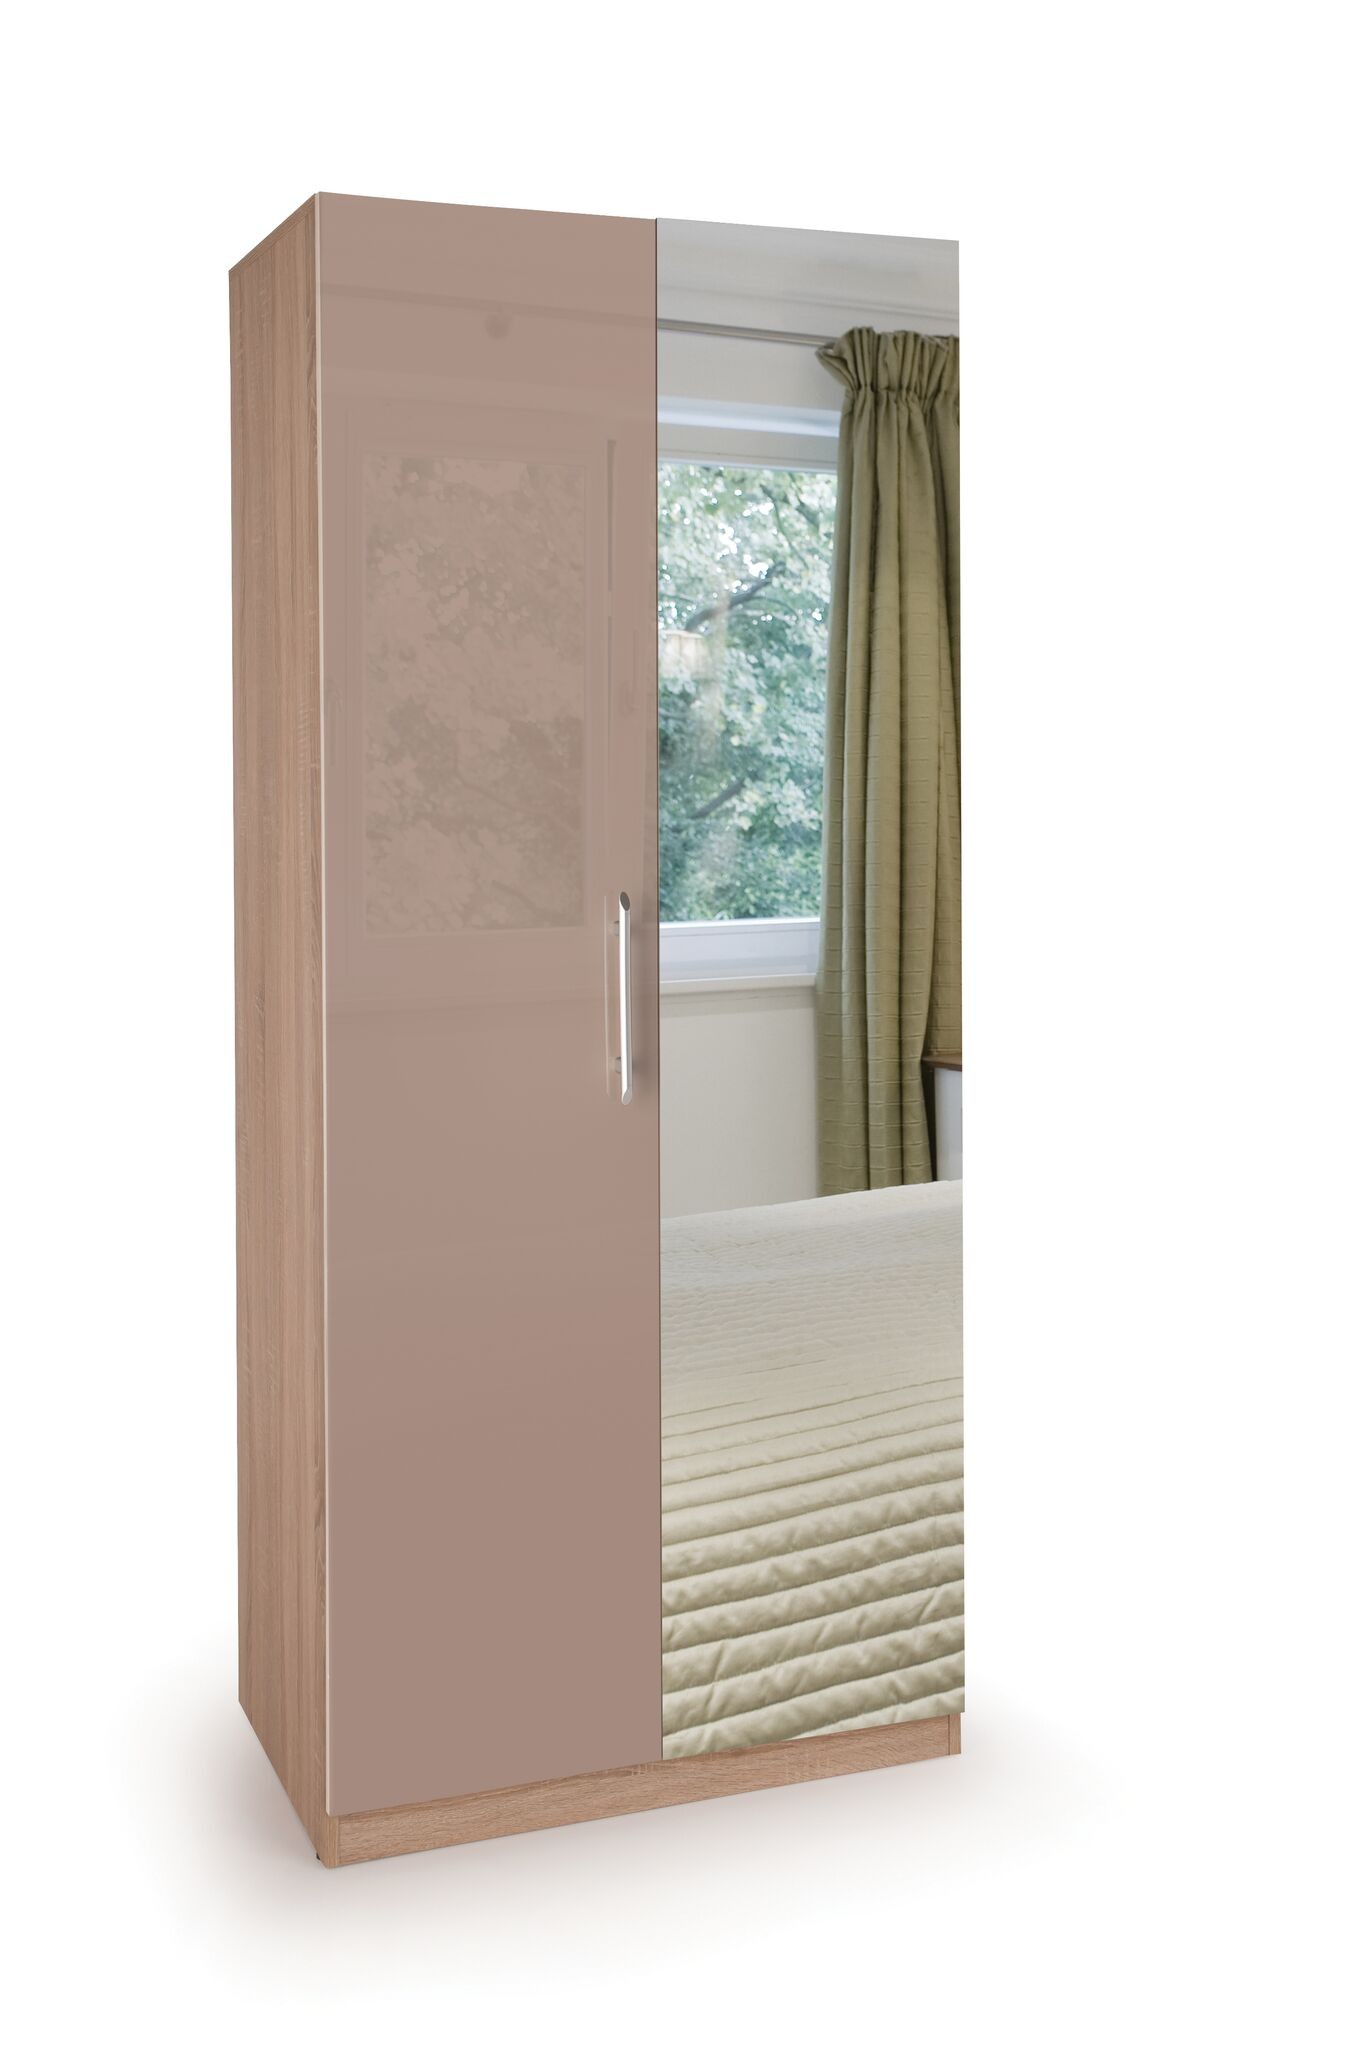 Coral Gloss Quality Bedroom Mirror Wardrobe - Oak Frame Mocha Doors